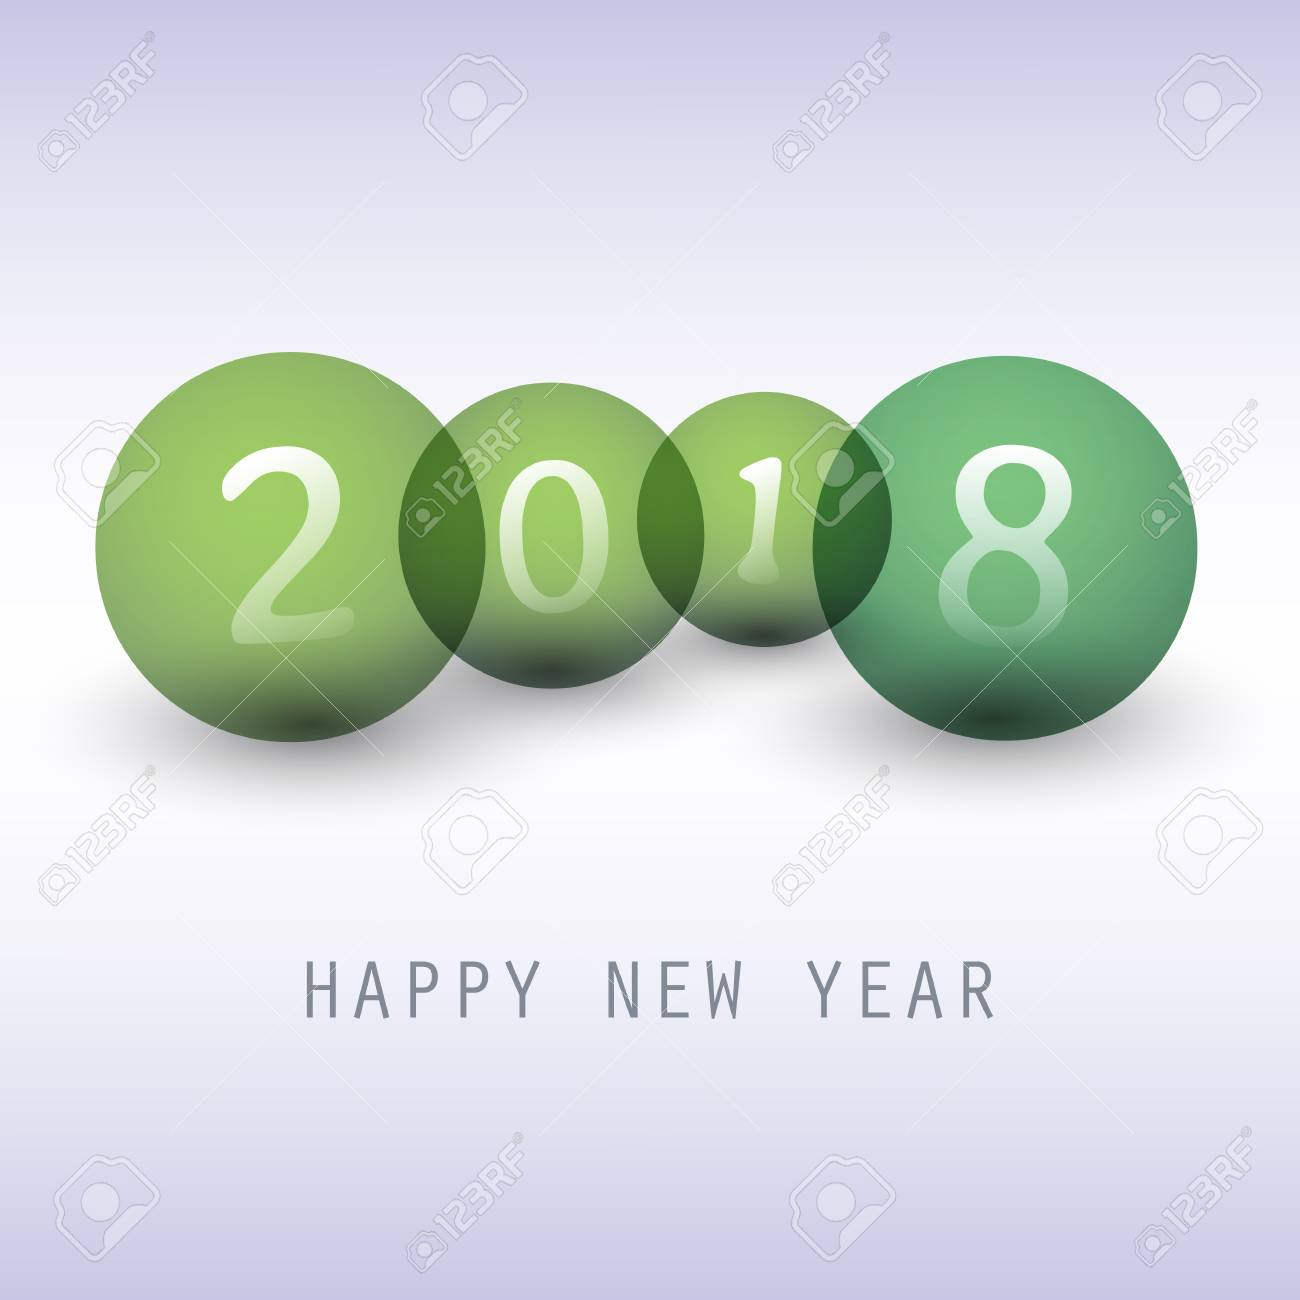 Best Wishes - Green Abstract Modern Style Happy New Year Greeting ...